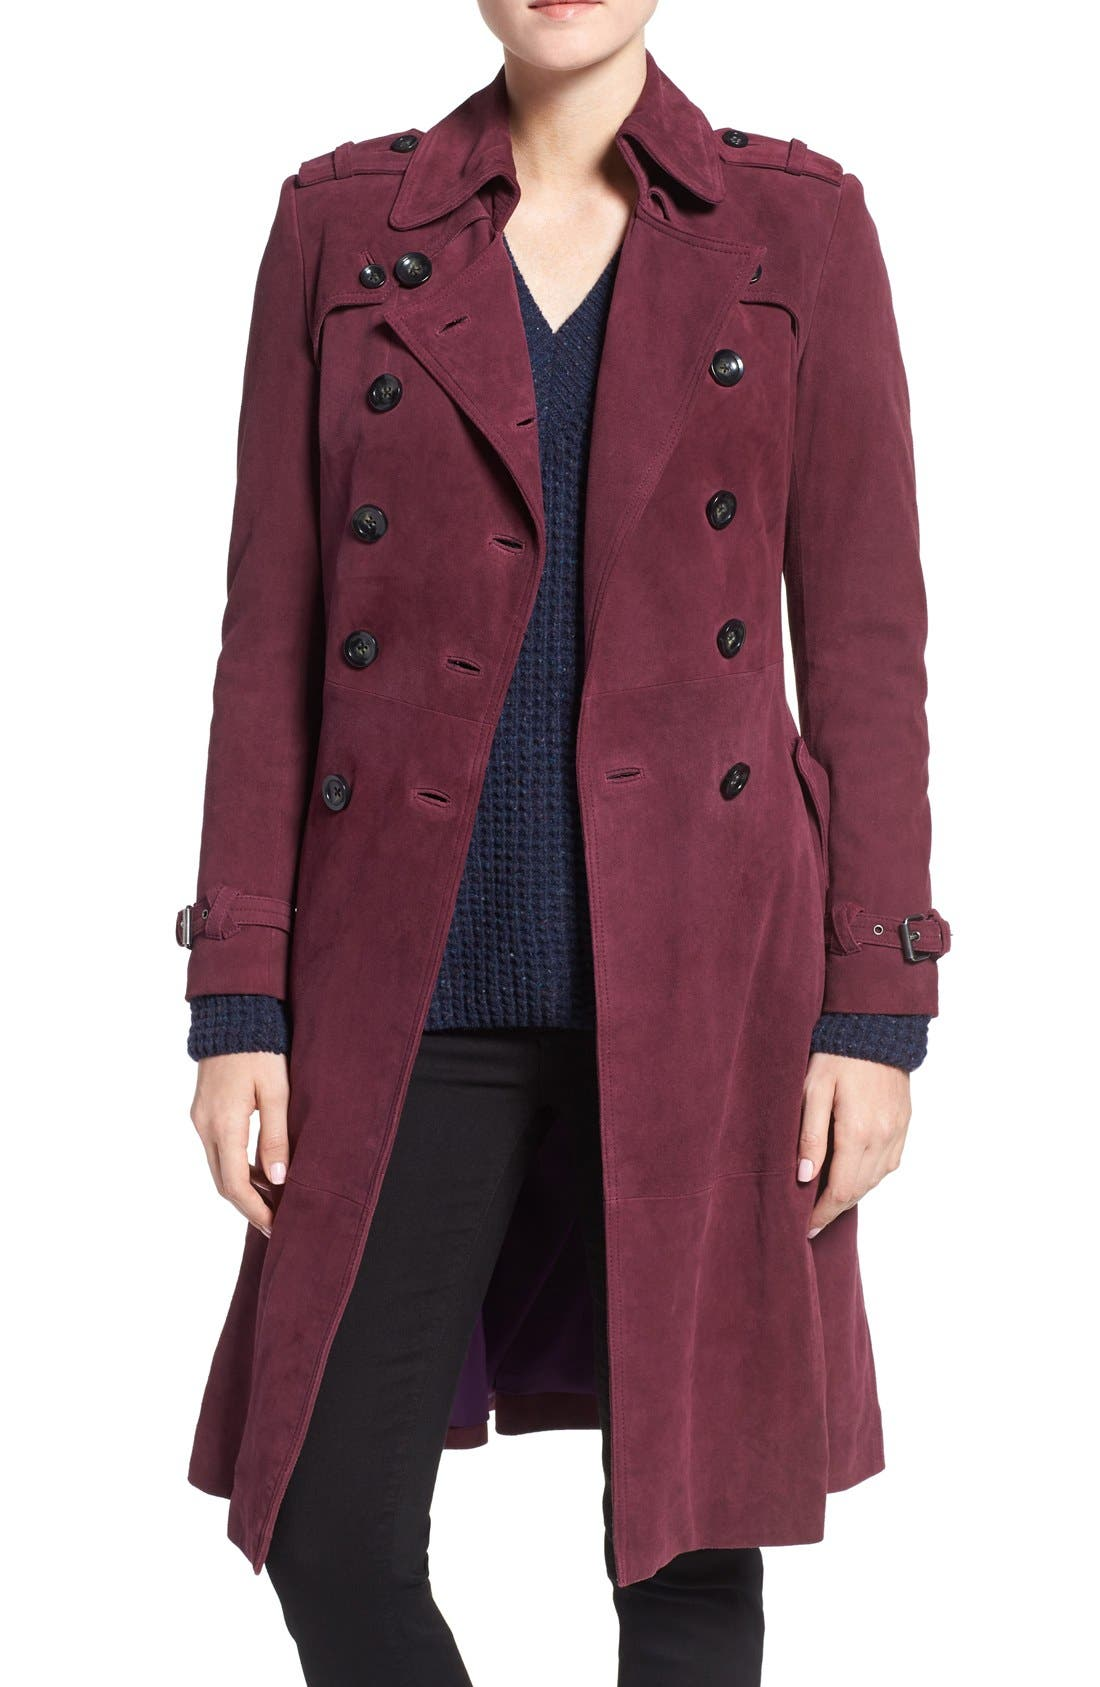 Main Image - Rebecca Minkoff 'Amis' Double Breasted Suede Trench Coat